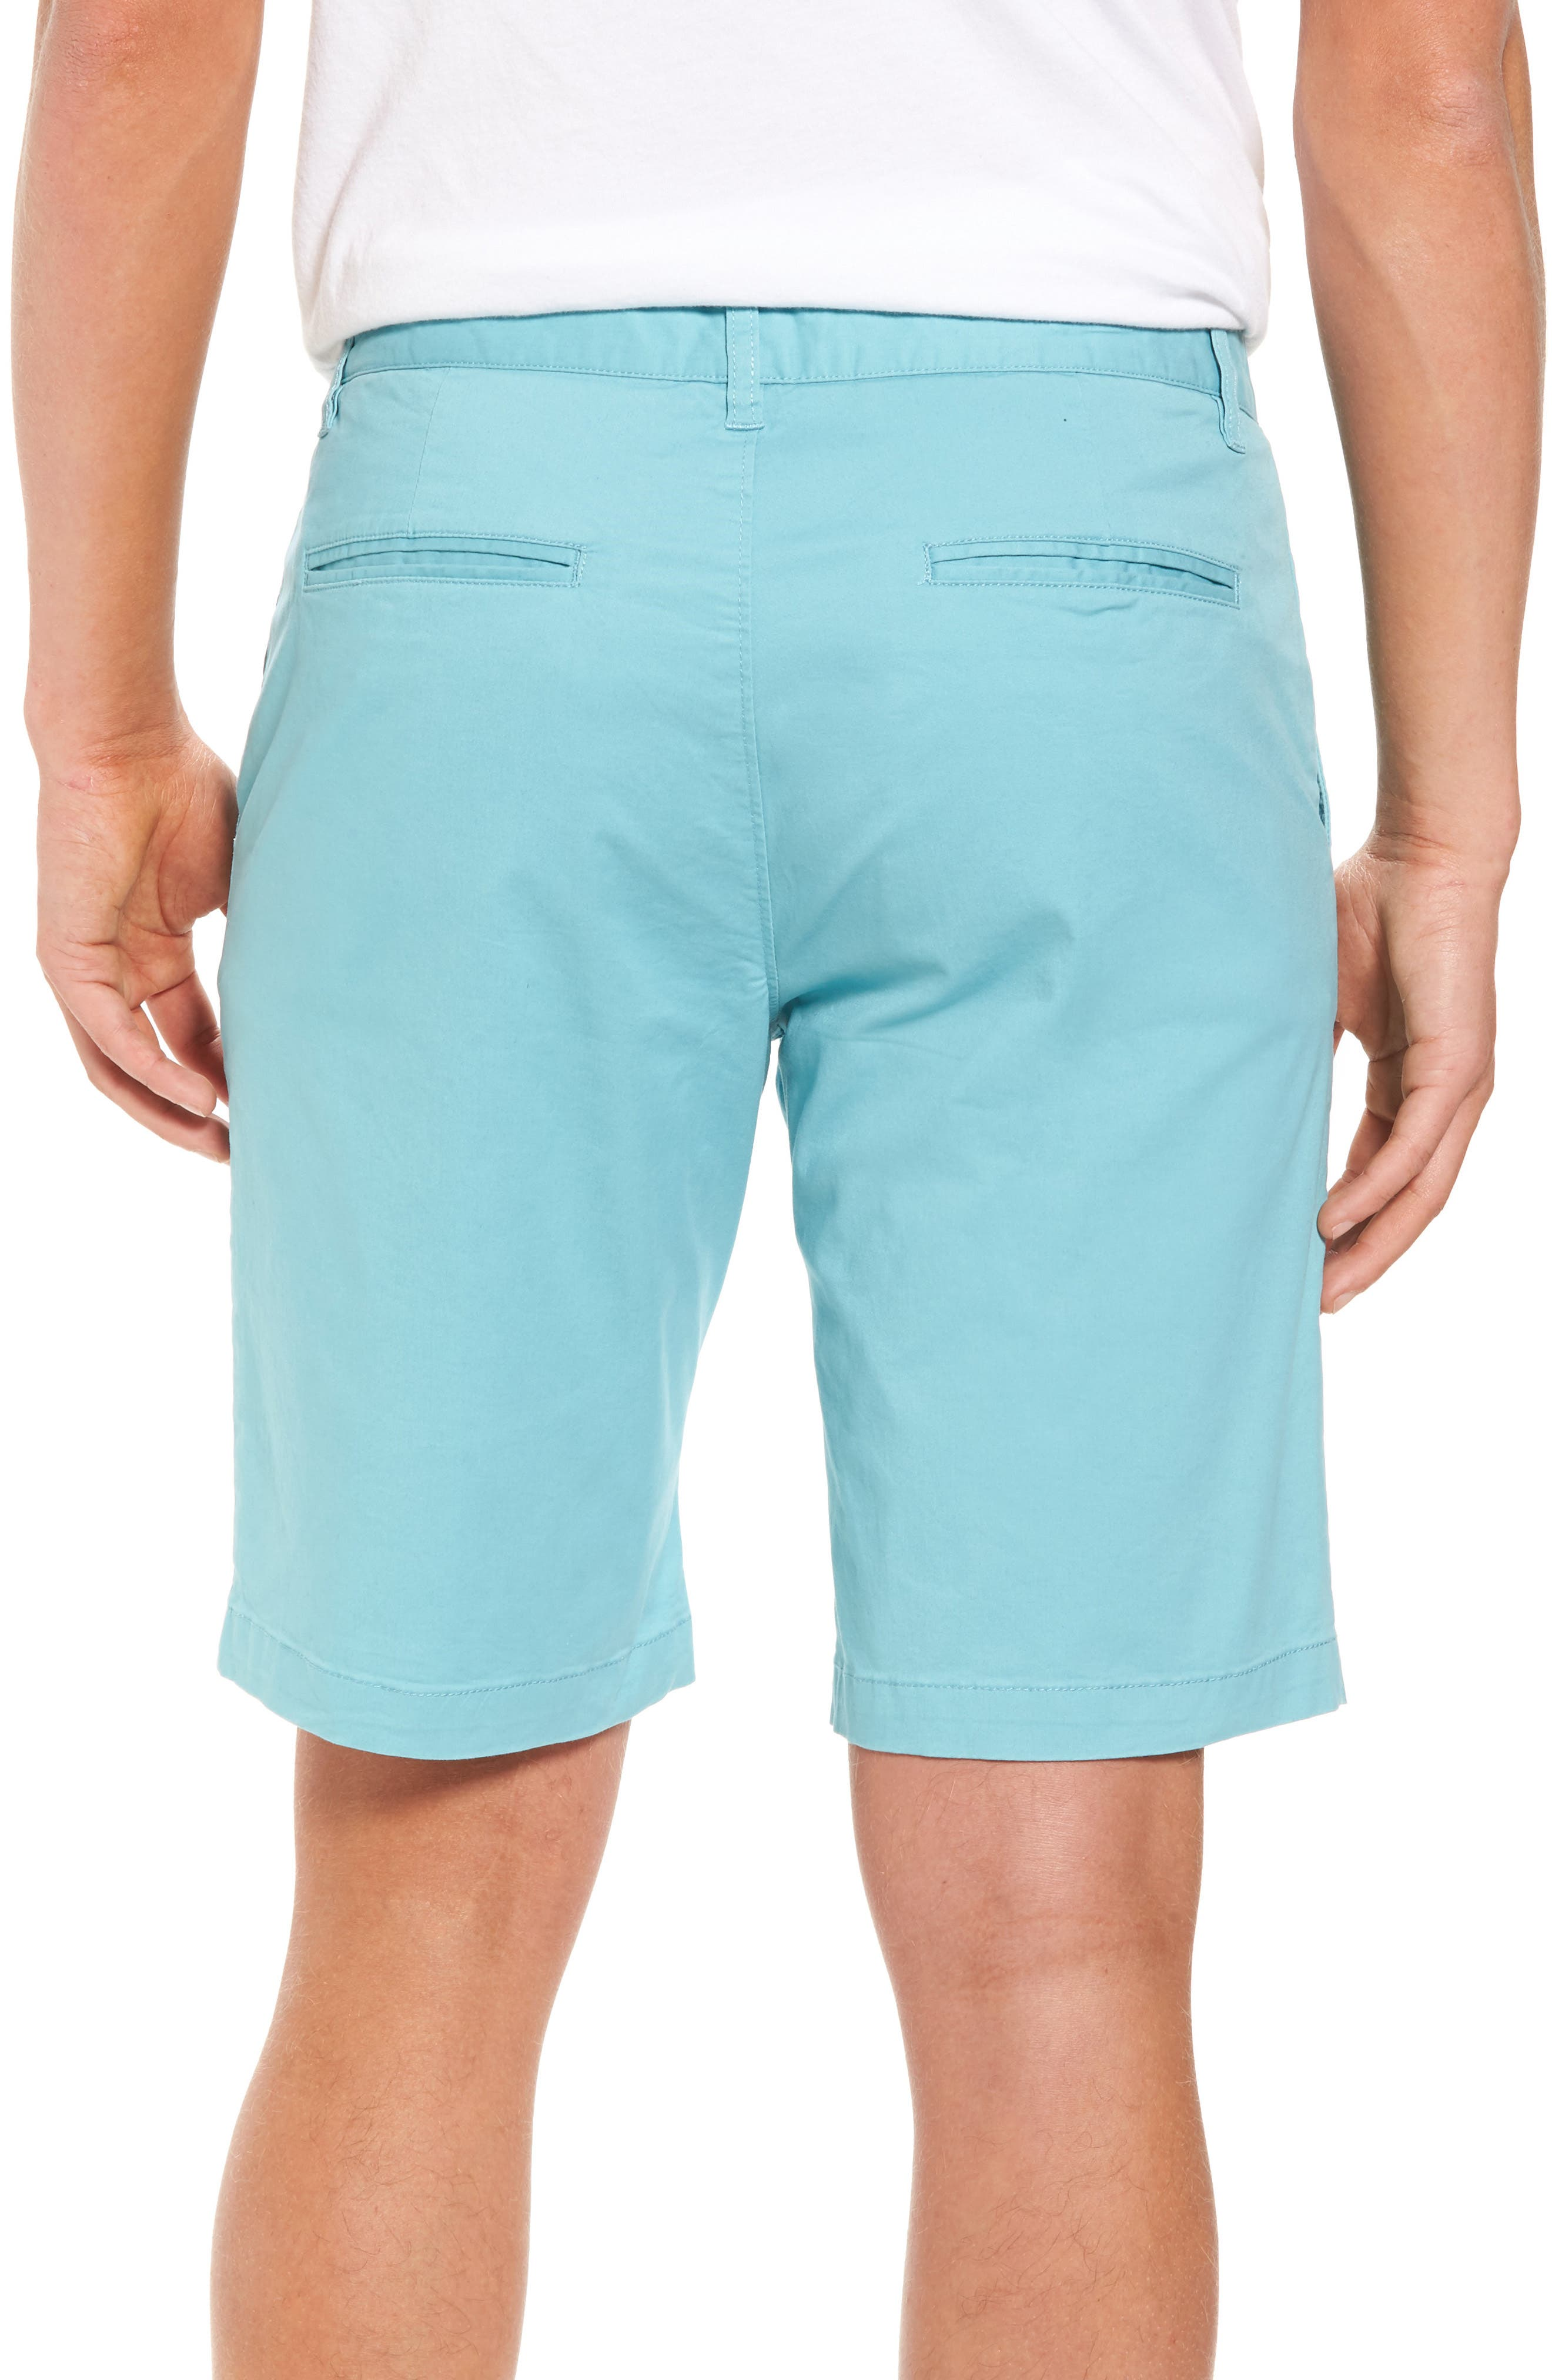 Slim Fit Brushed Twill Shorts,                             Alternate thumbnail 2, color,                             Dusty Blue